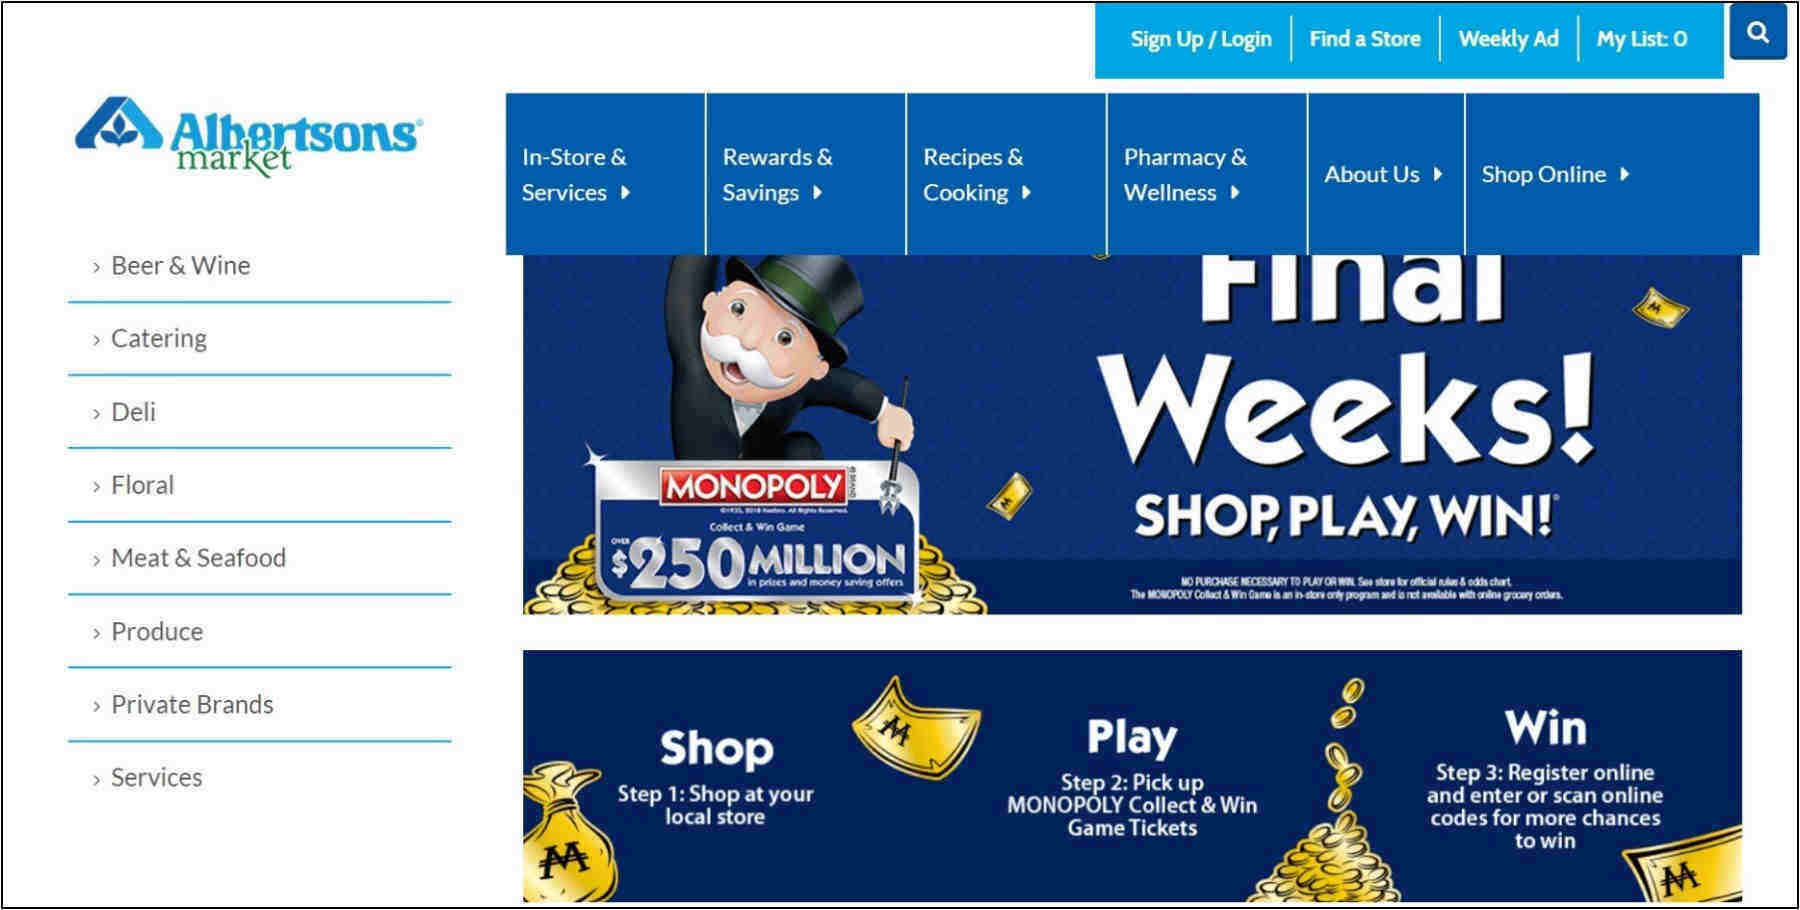 Albertsons Monopoly – Shop Play Win – Win $250M In Gifts